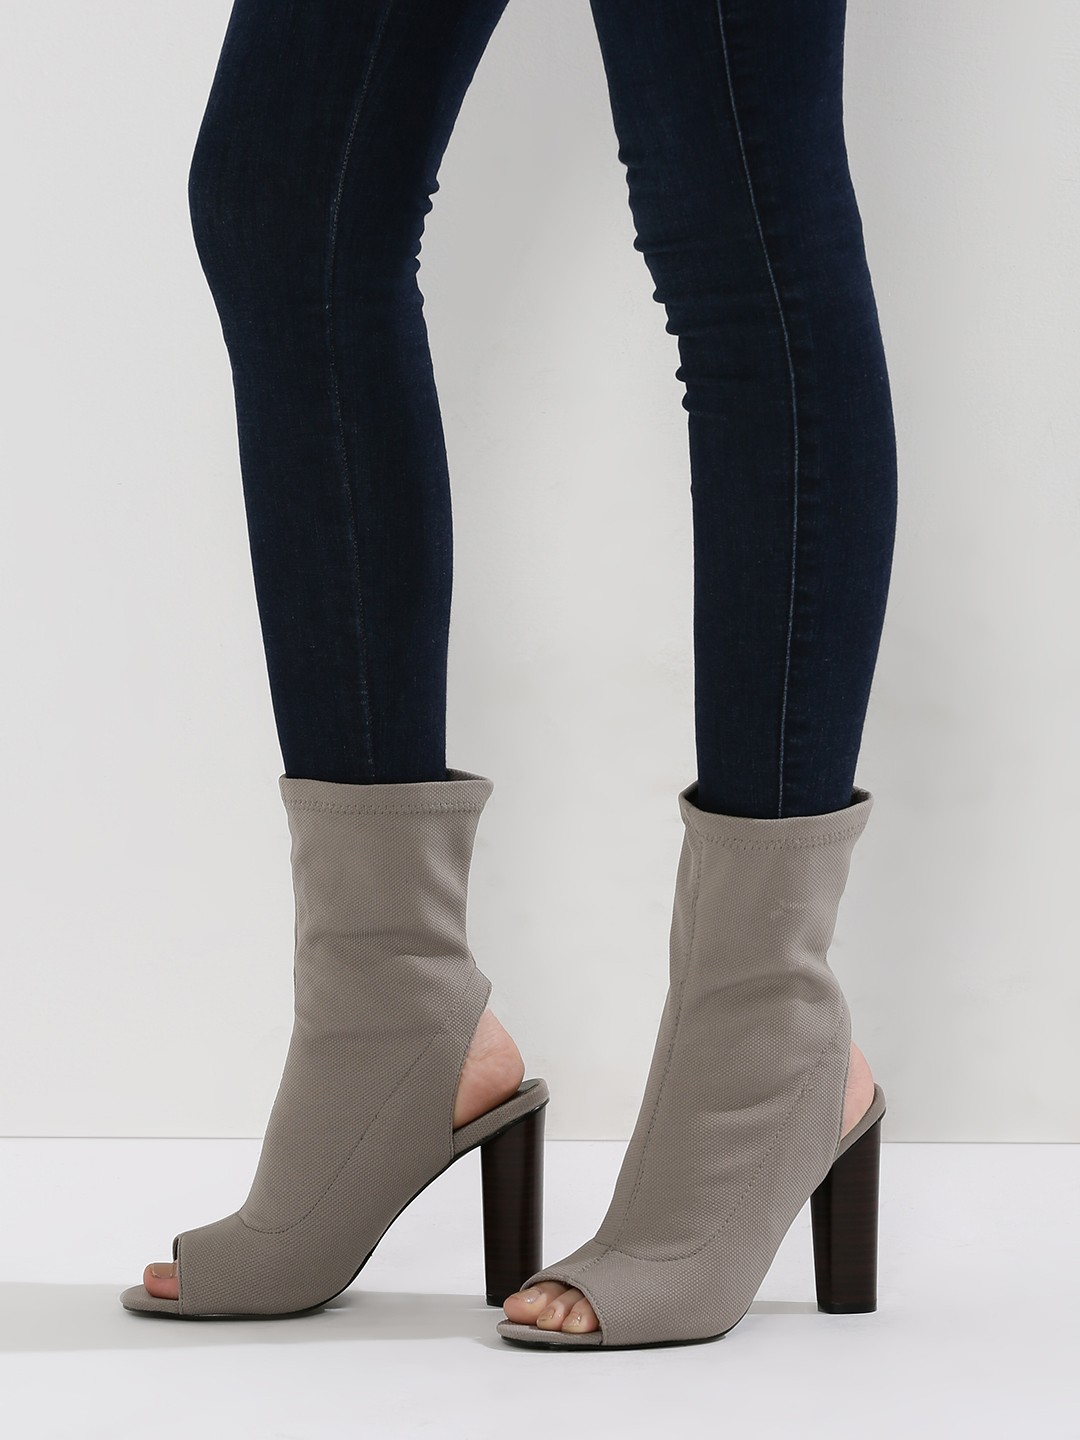 3 stylish boots - Sock Fit High Ankle Boots